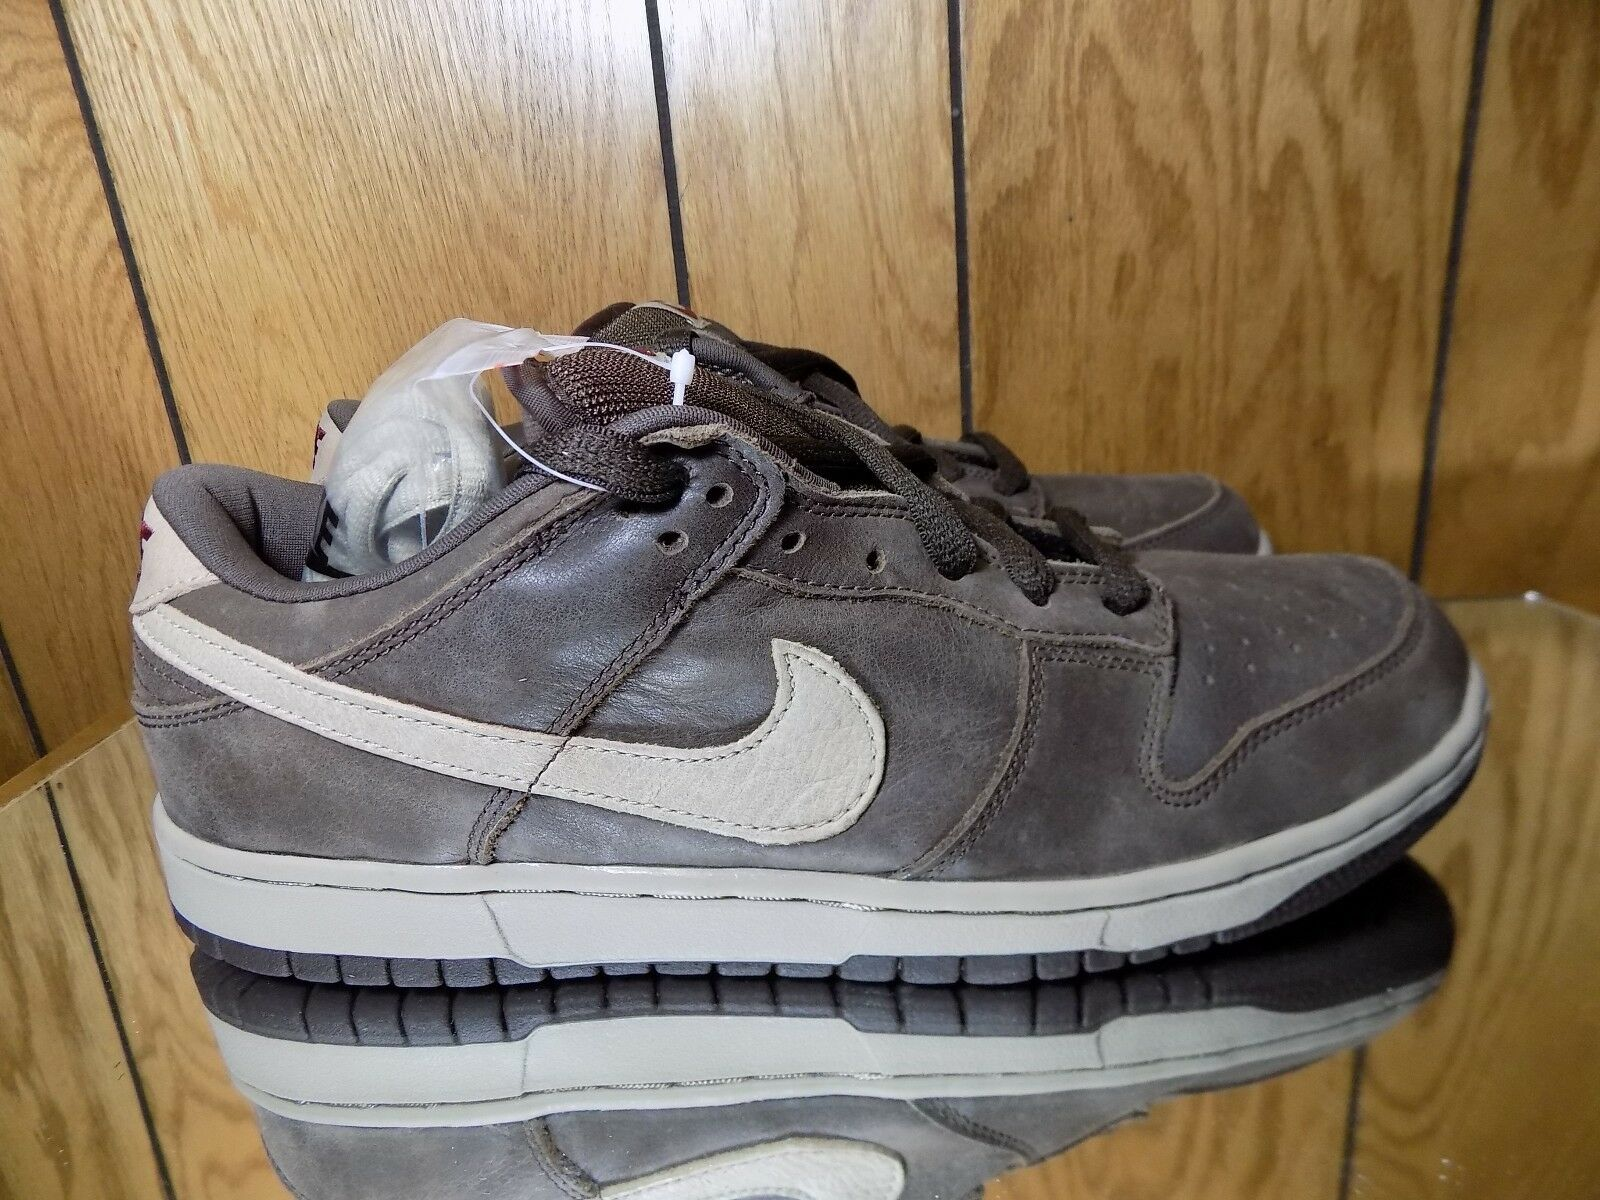 2018 Nike Dunk Low Pro SB Darm Mocha Chino Brown 304292-225 Sz 10.5 New shoes for men and women, limited time discount